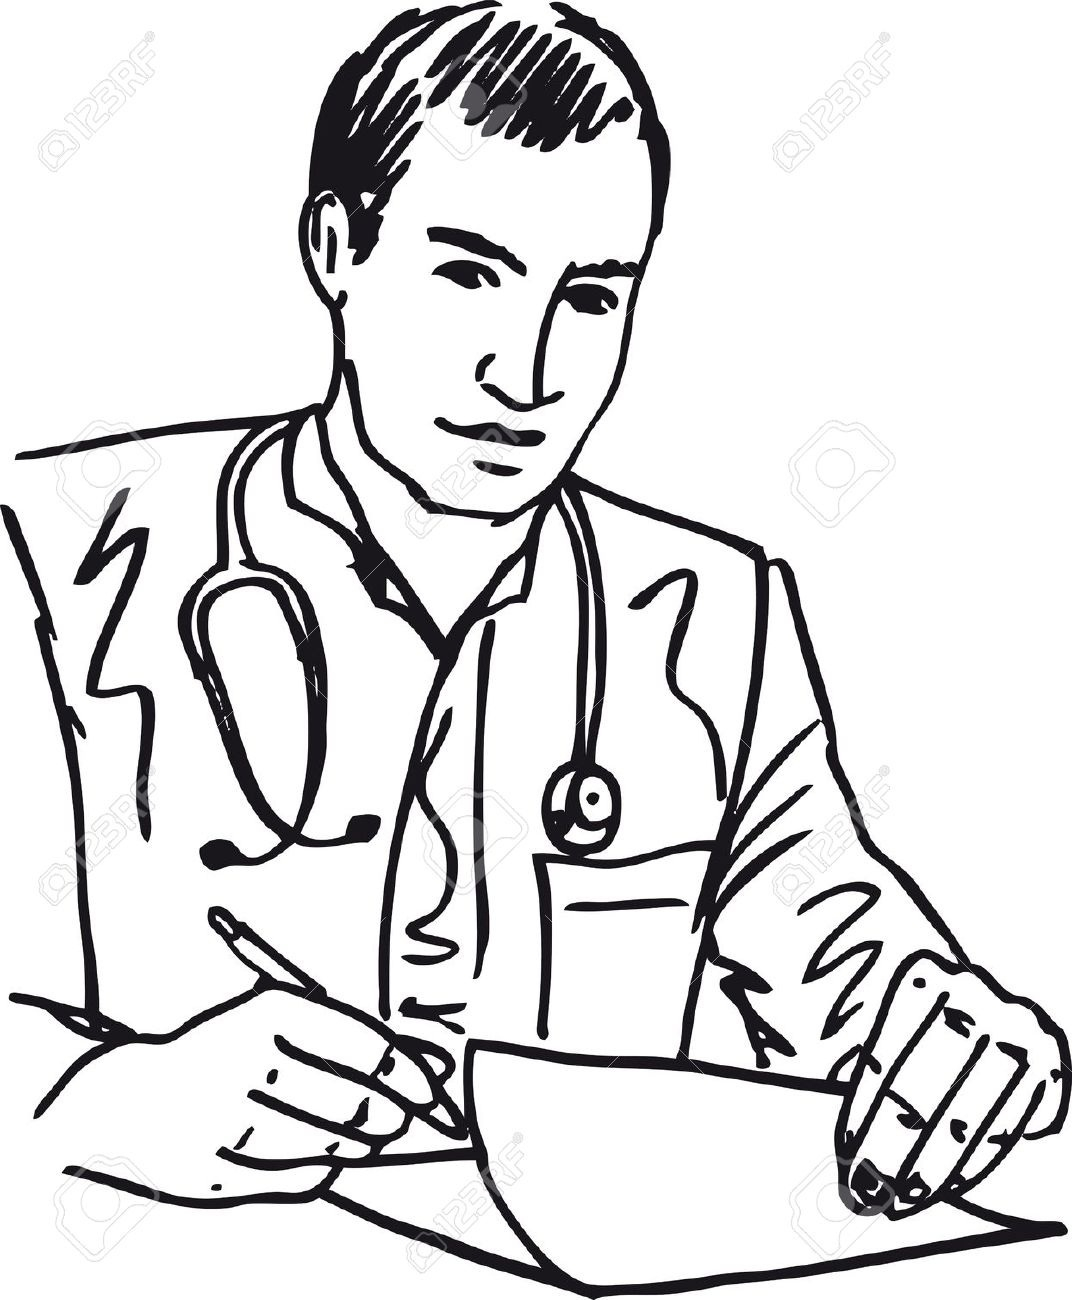 Best Of Doctor Clipart Black And White.